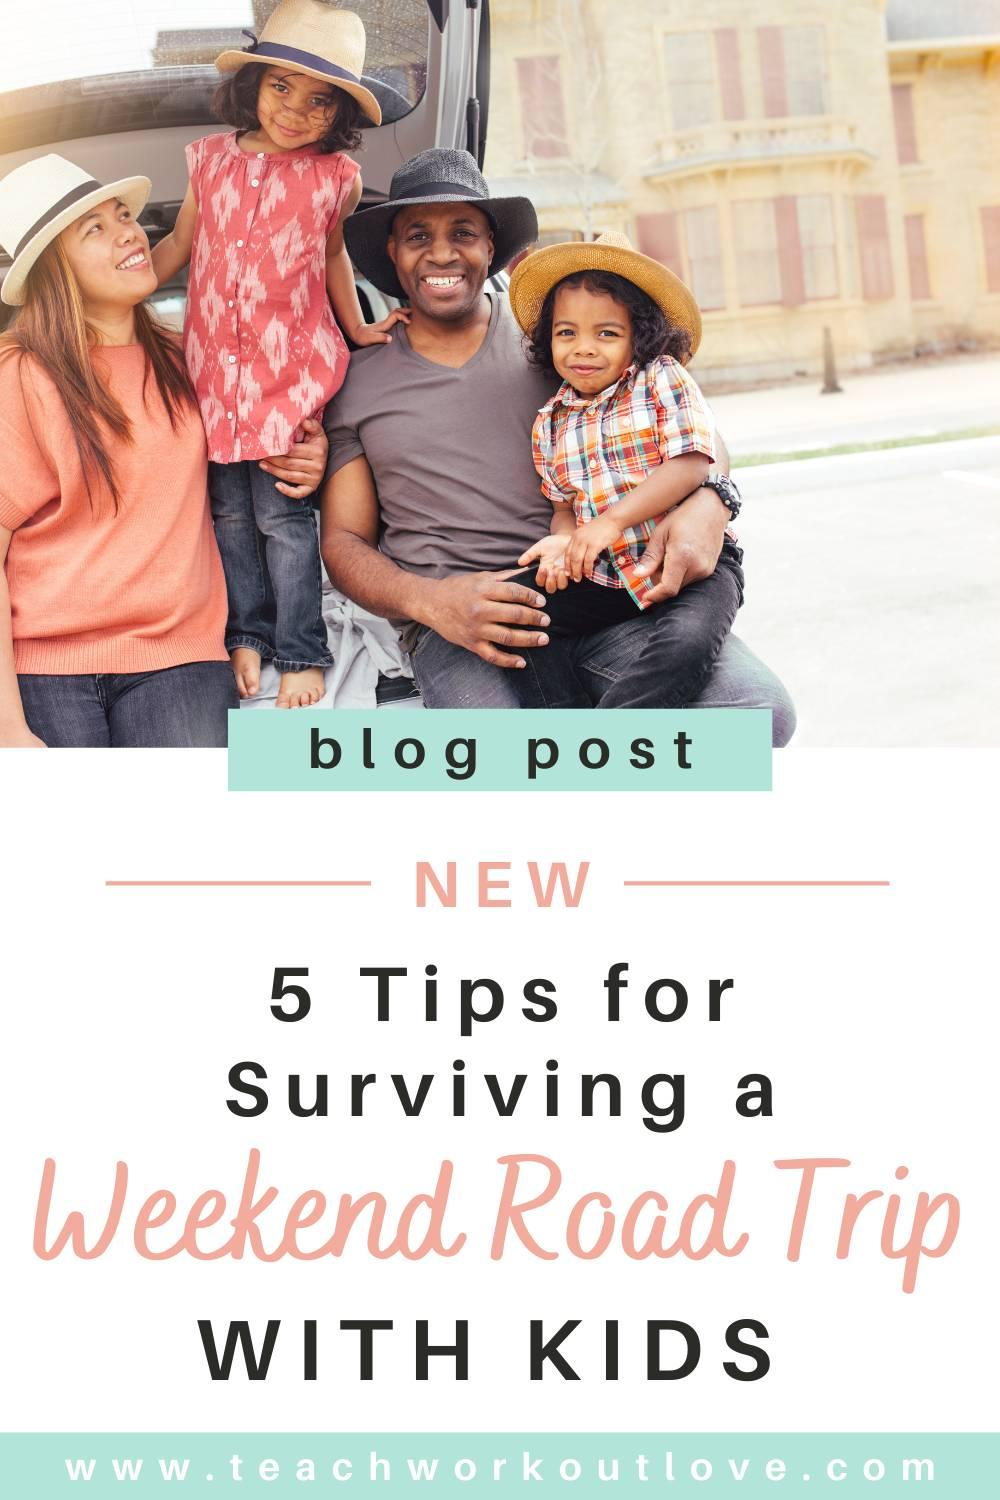 Road trips are a rite of the journey for families. Before you hit the road with your kids, consider these tips on How to Surviving a Road Trip with Kids.